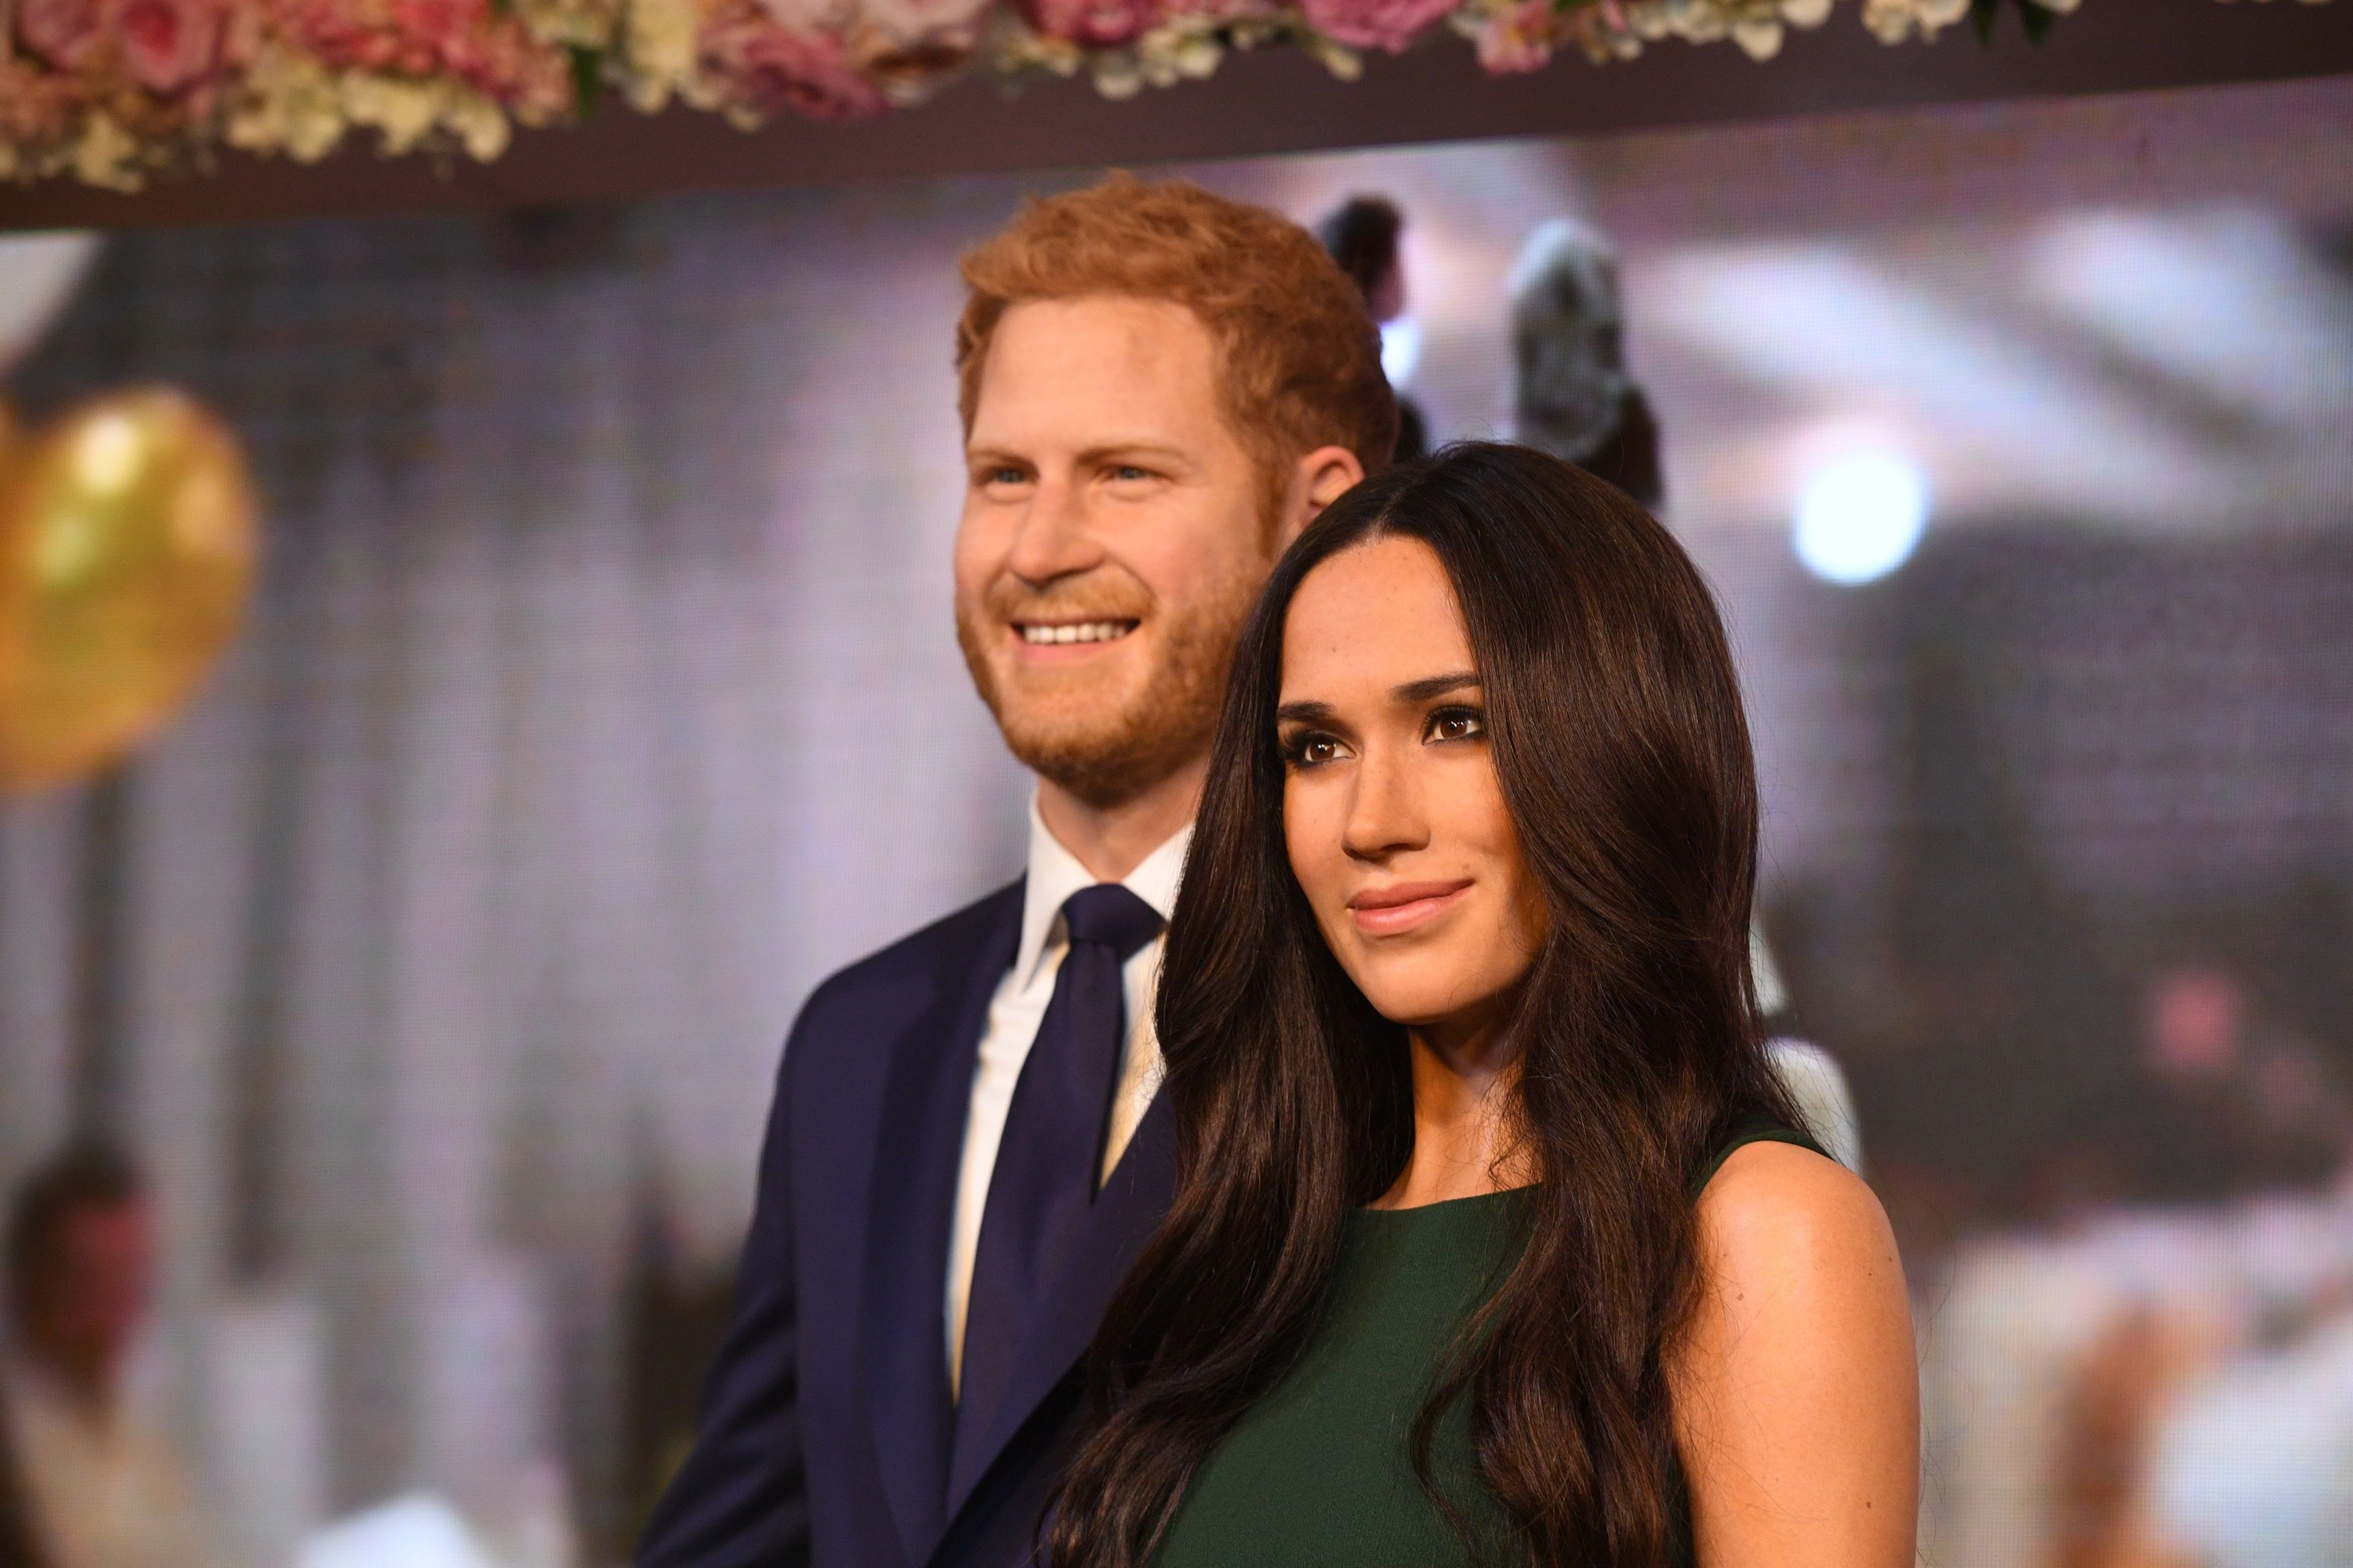 Some interesting facts about Meghan Markle Video